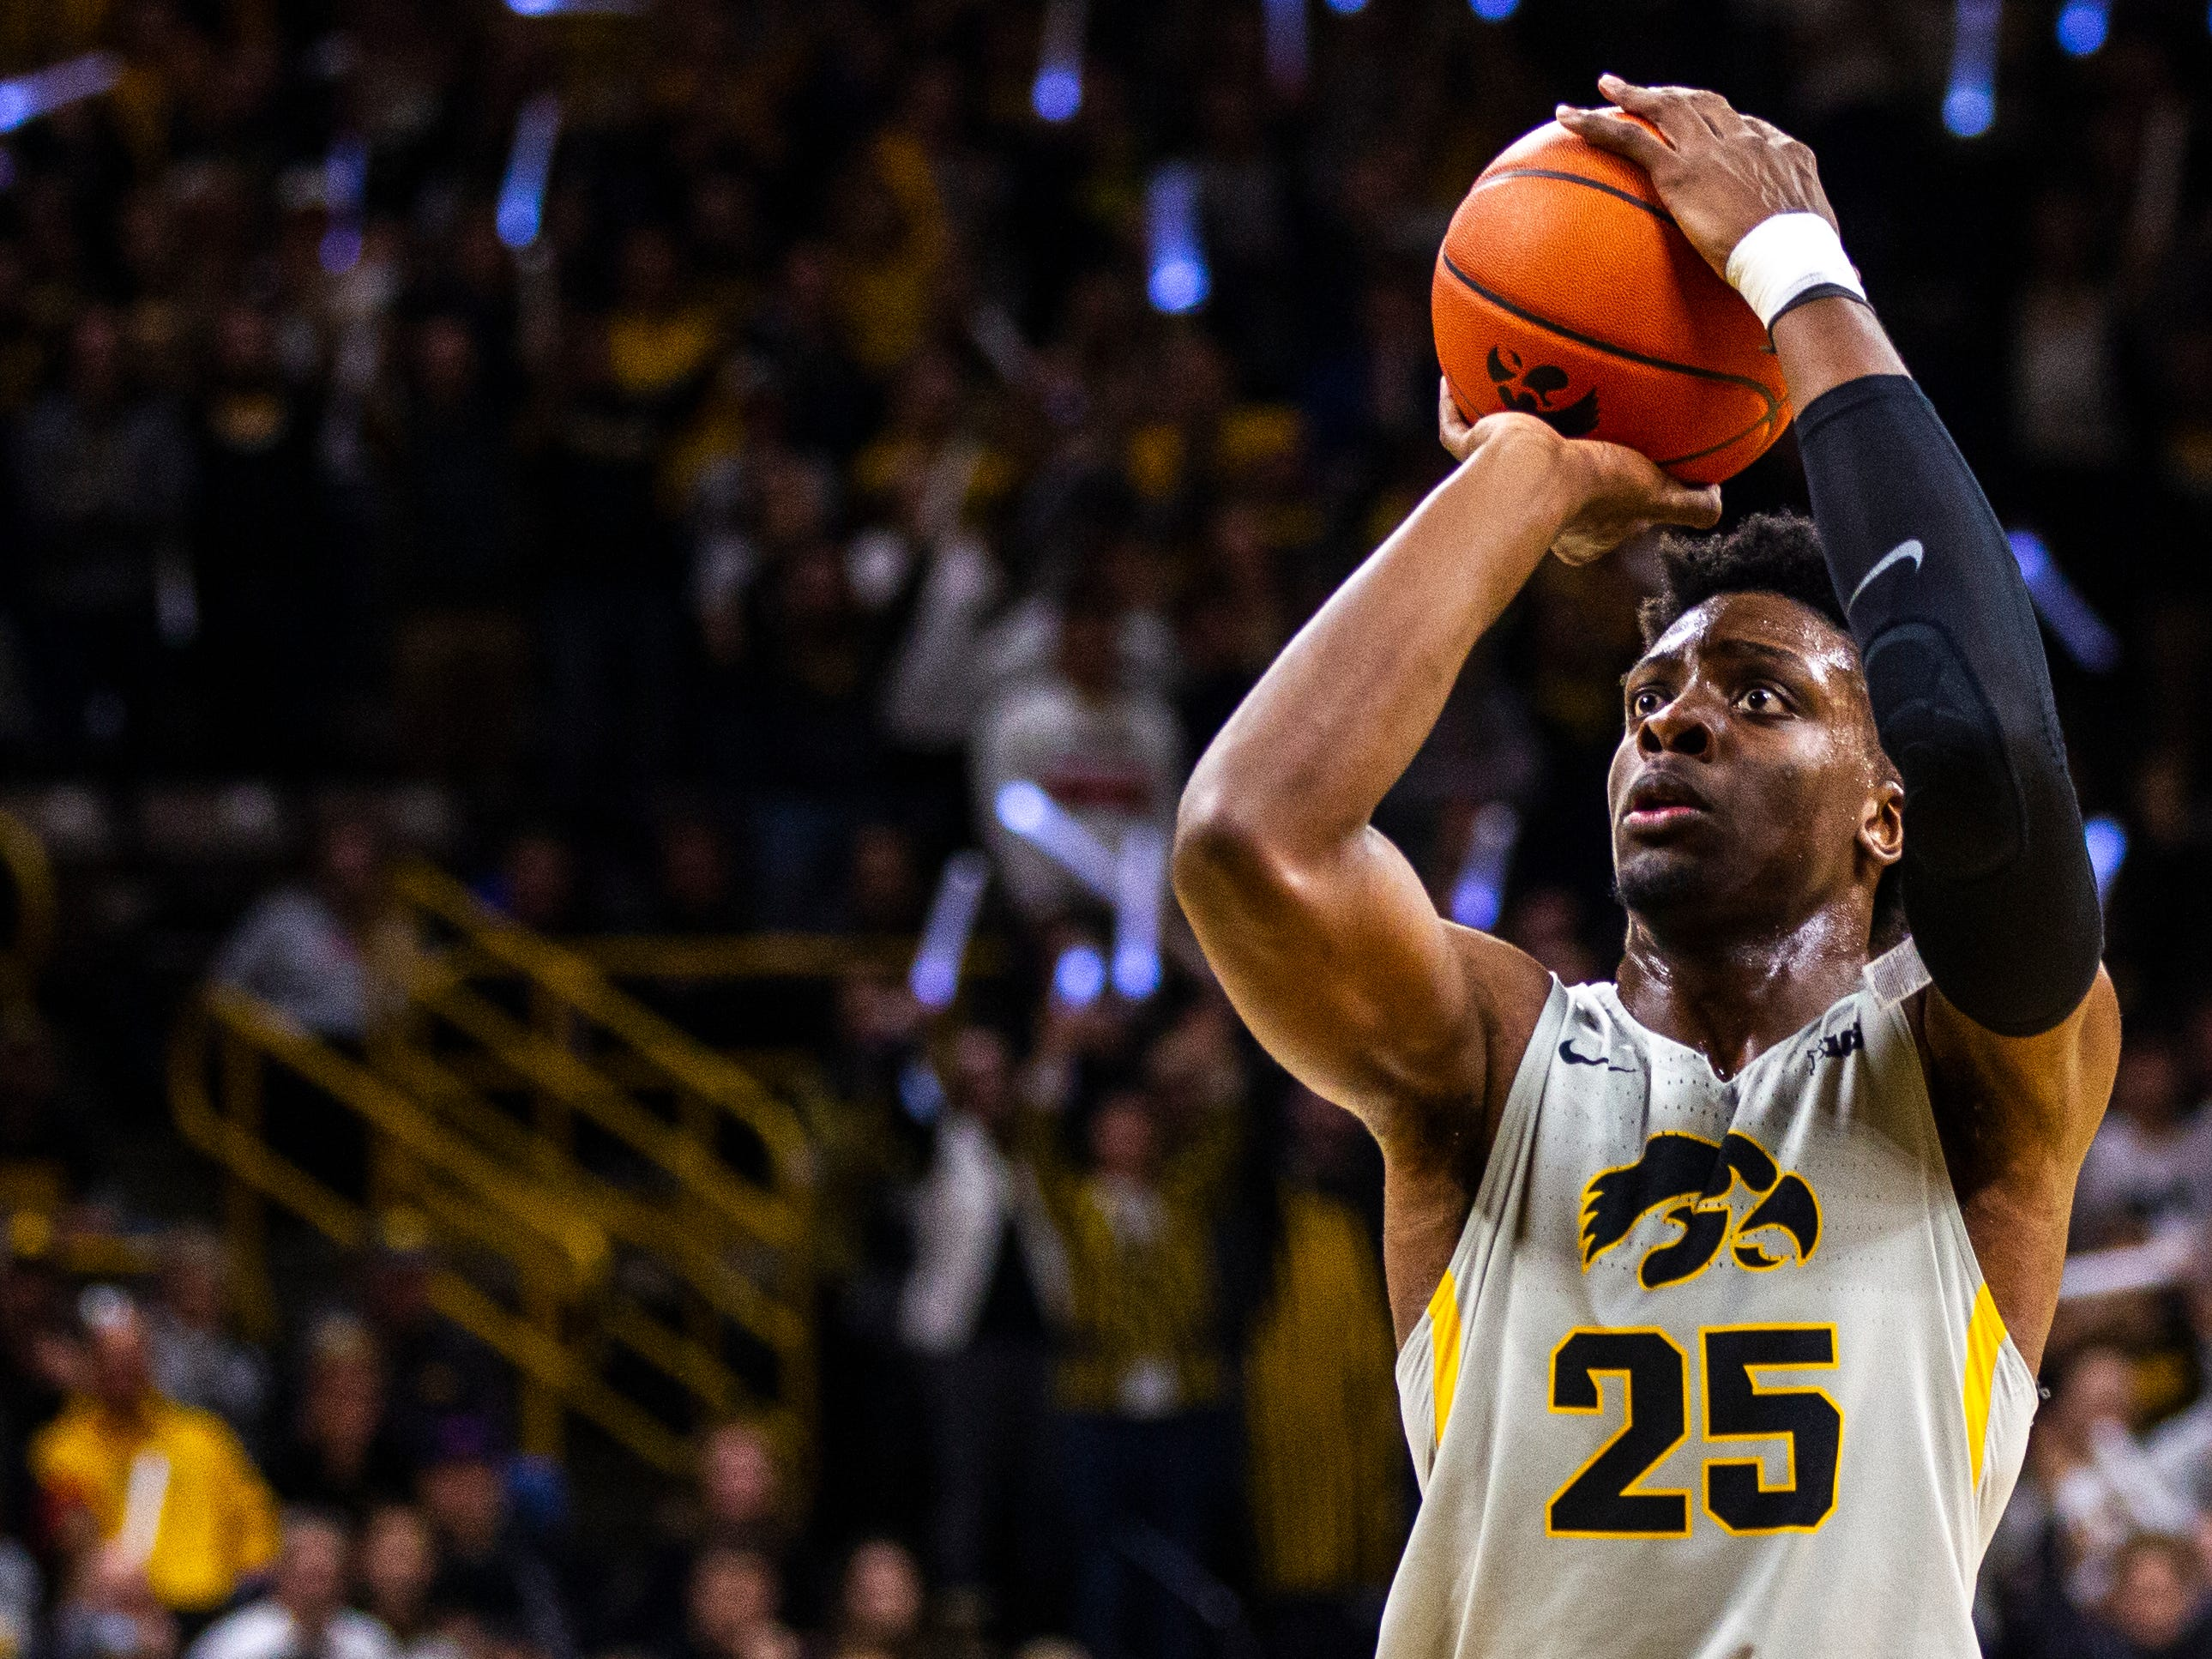 Iowa forward Tyler Cook (25) shoots a free-throw during a NCAA Big Ten Conference men's basketball game on Thursday, Jan. 24, 2019, at Carver-Hawkeye Arena in Iowa City, Iowa.